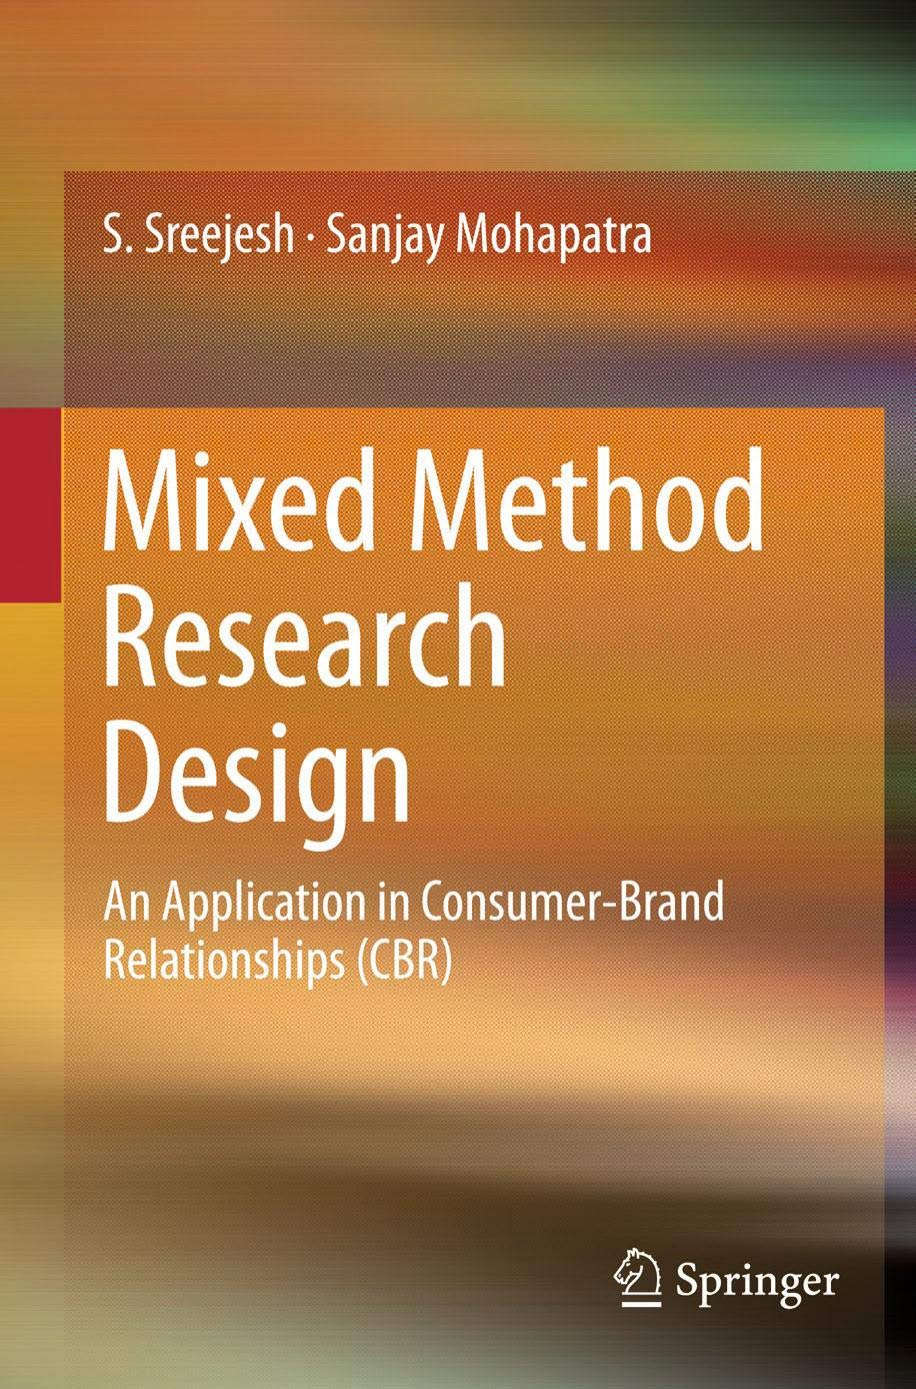 Mixed Method Research Design: Insights on life